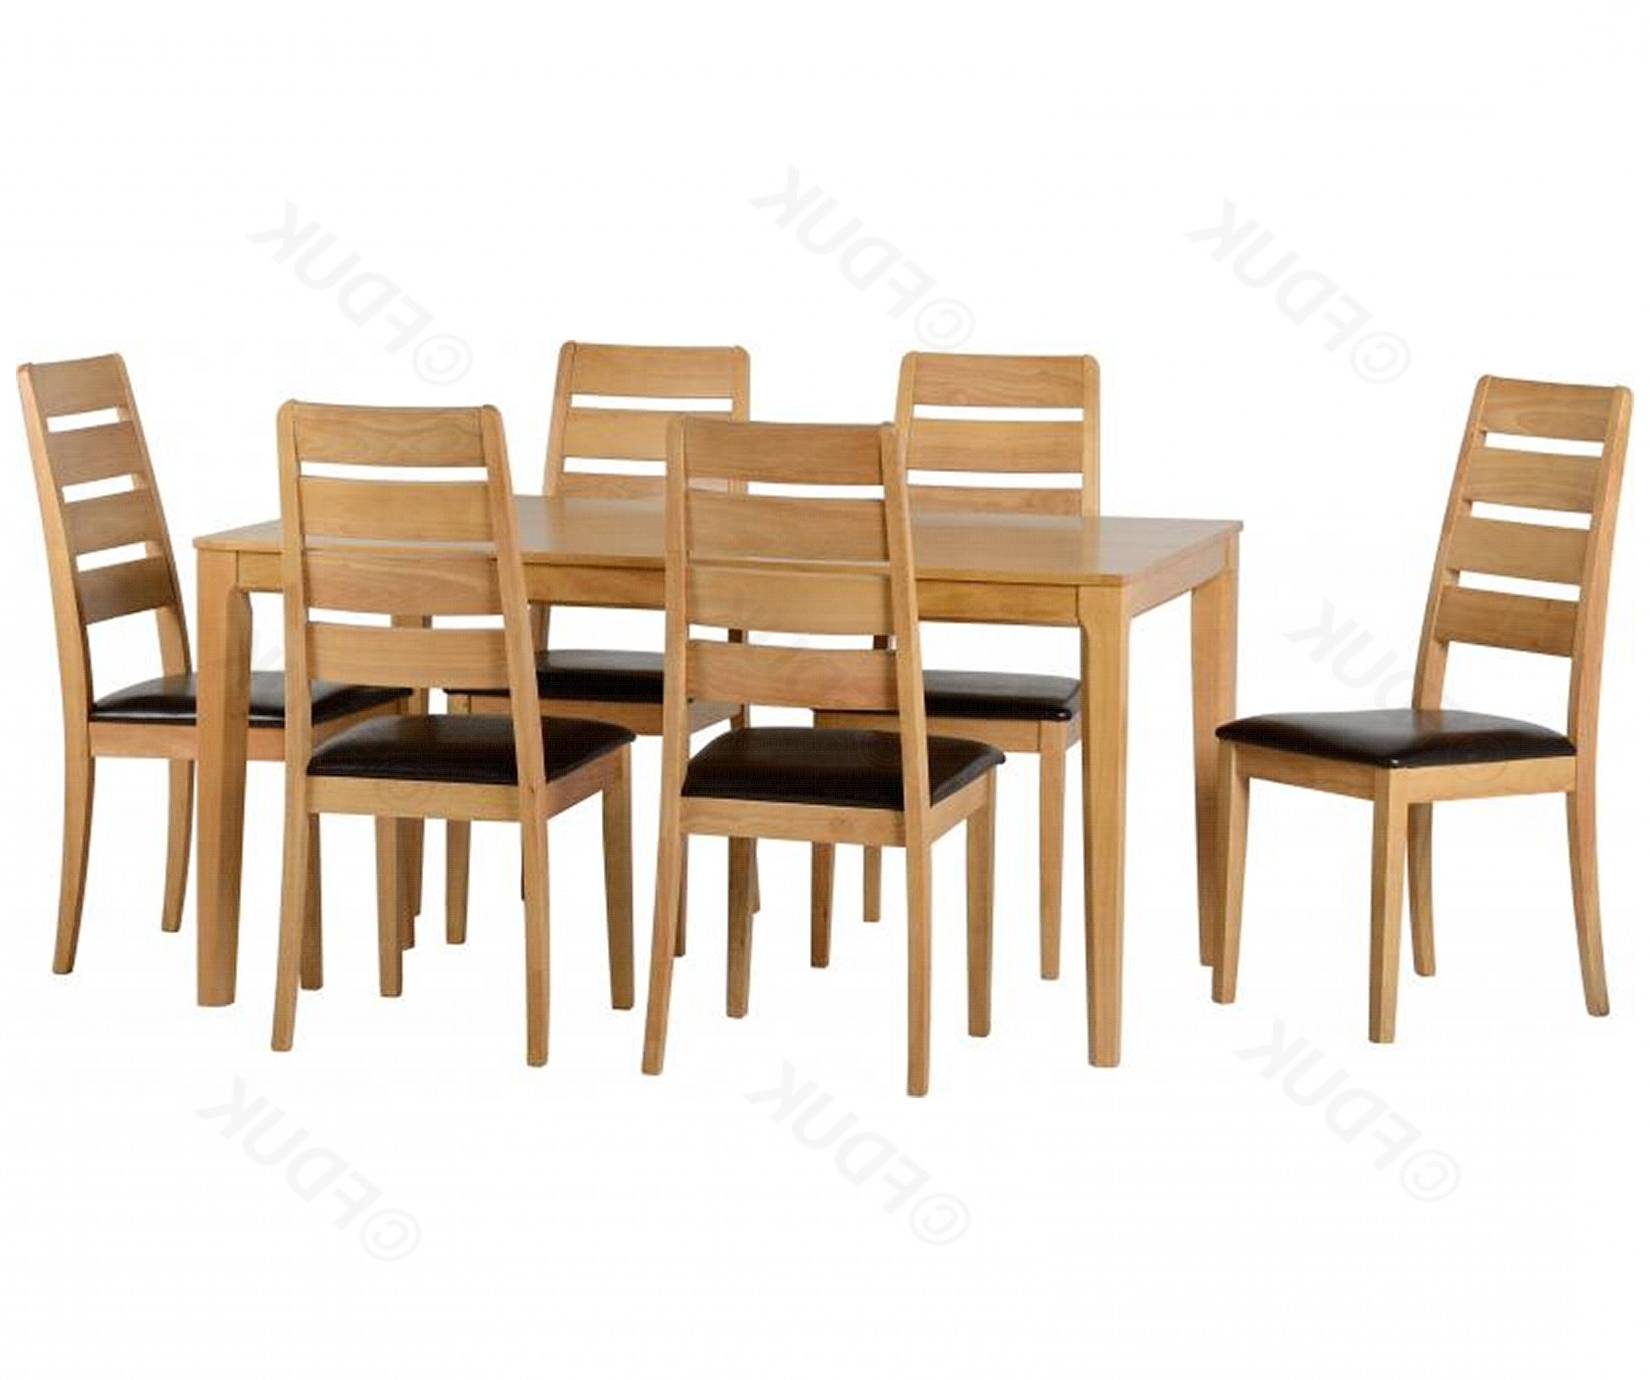 Logan 6 Piece Dining Sets Intended For Most Recent Seconique (View 4 of 25)